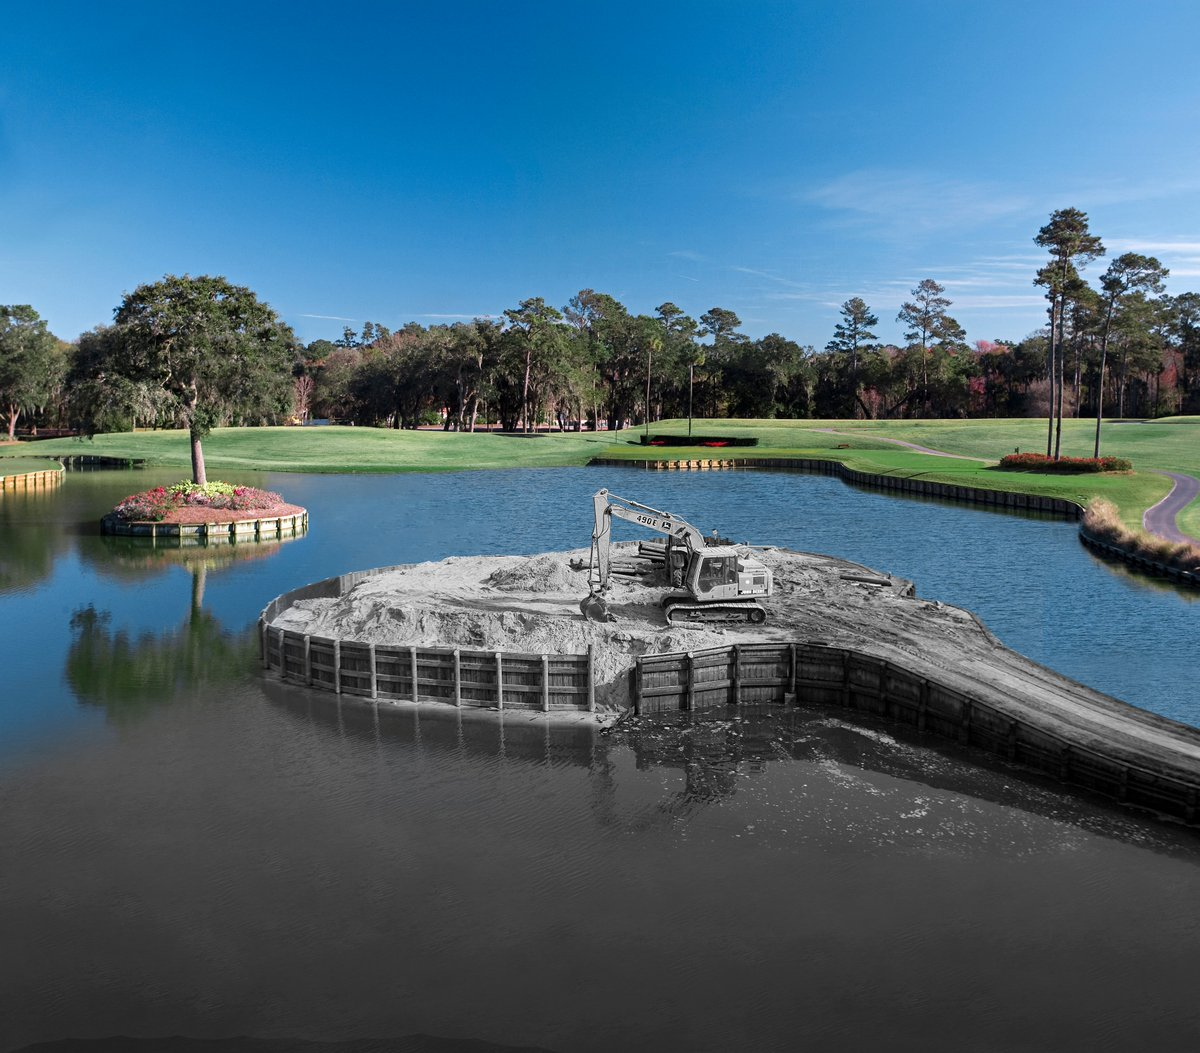 The TPC Network is celebrating its 40th anniversary! Some of the world's most elite architects have designed our courses such as @SharkGregNorman, who designed TPC Sugarloaf. We're proud to be part of the TPC Network's storied history. Learn more: https://t.co/g0UDSfnInT #TPC40